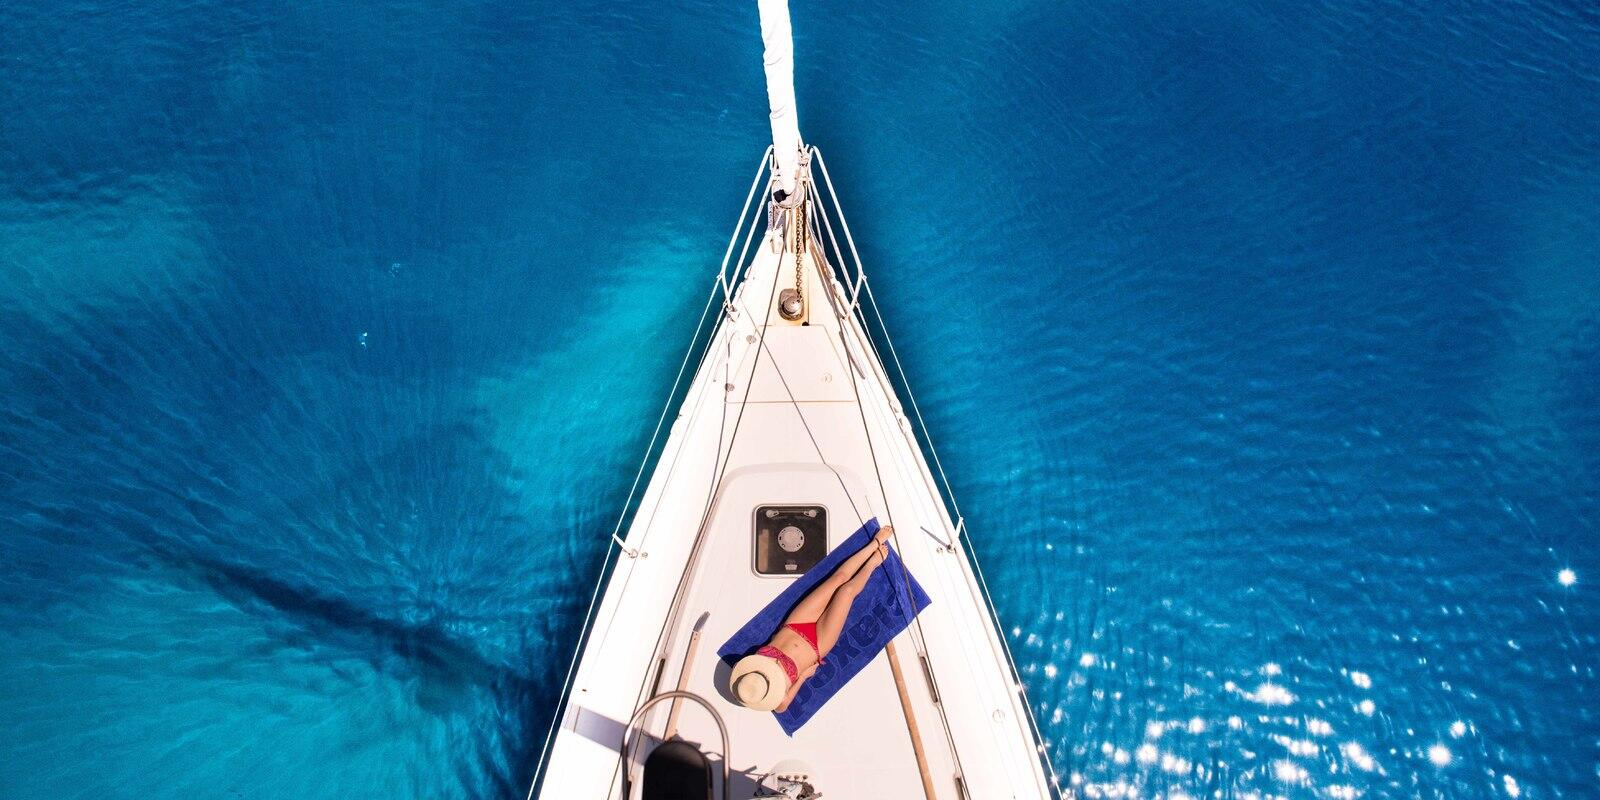 Discovering the Aeolian Islands - A week of sailing